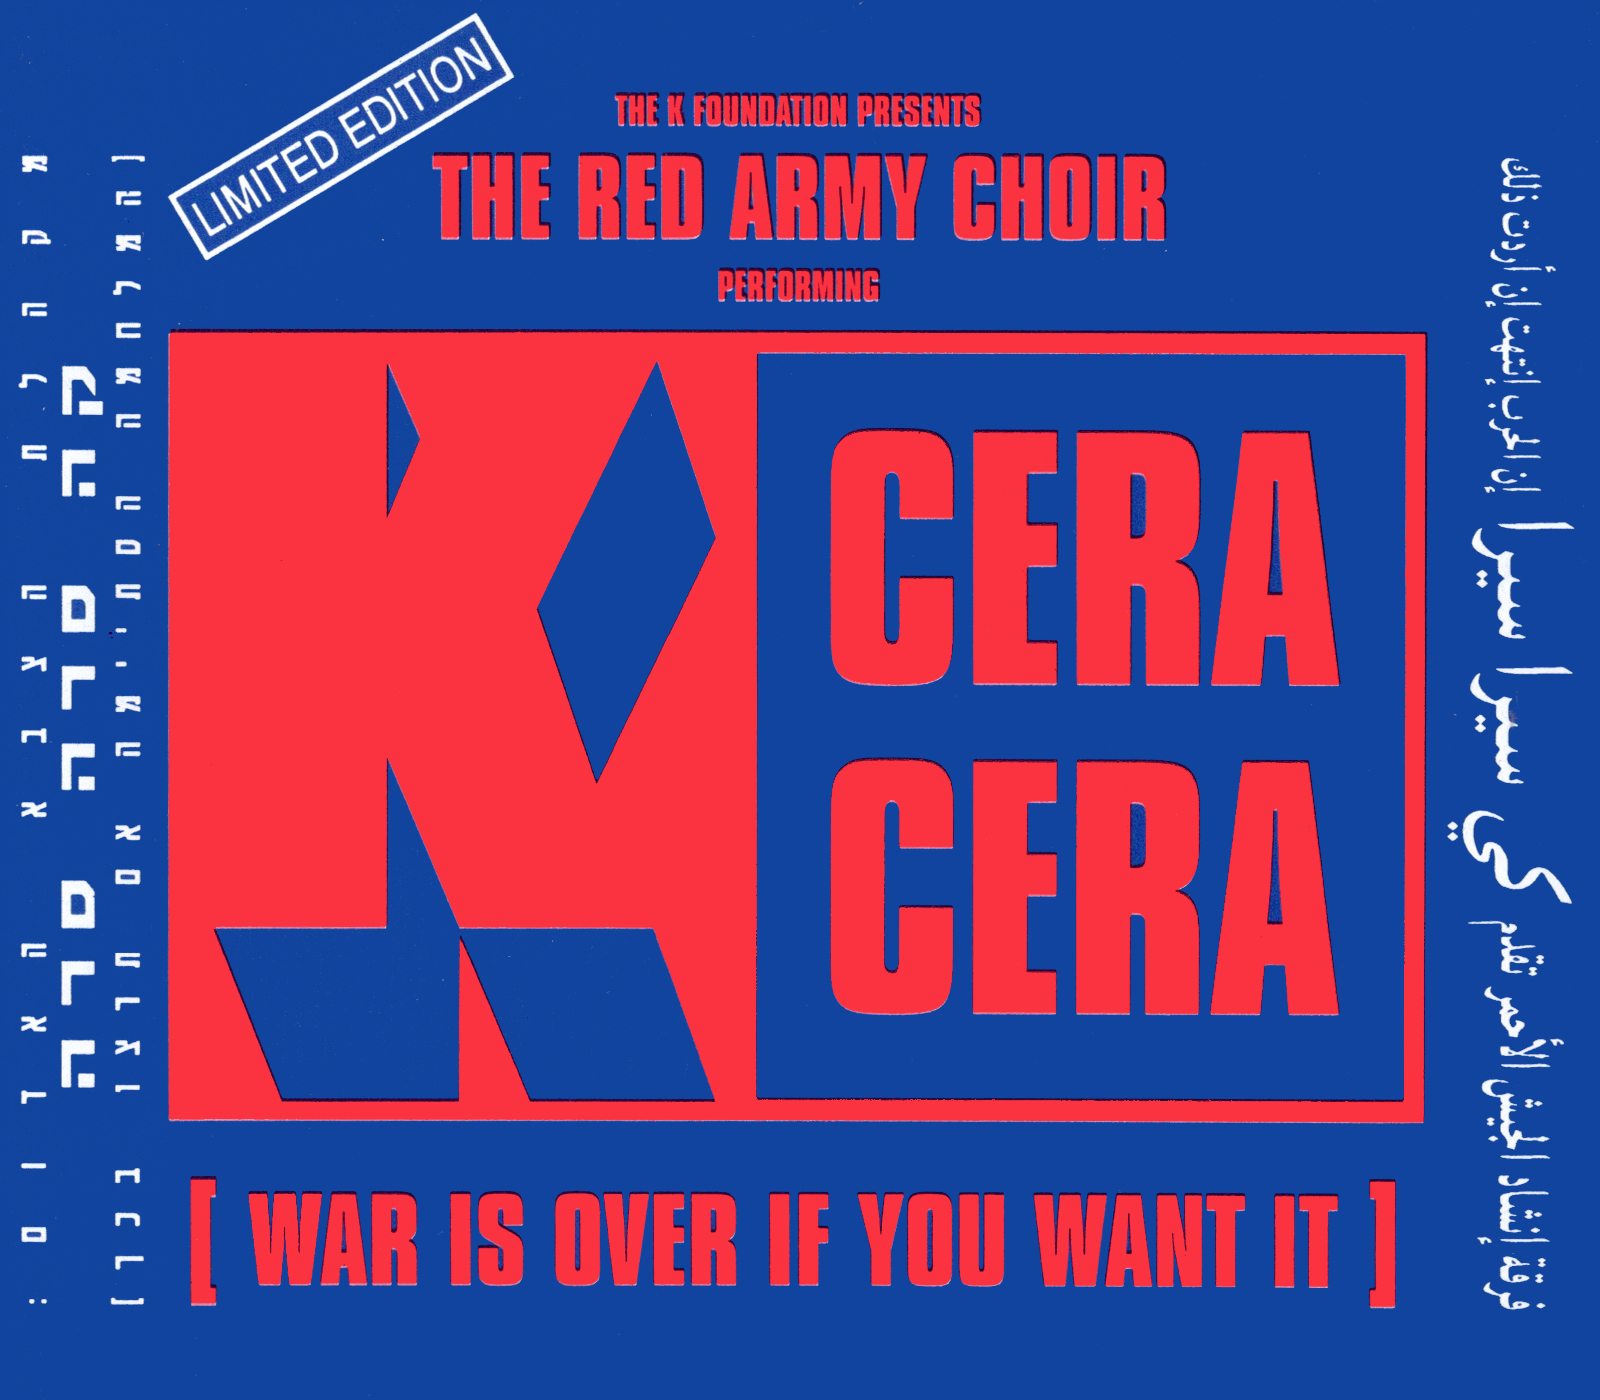 K Cera Cera (War Is Over If You Want It) (Single, 1993